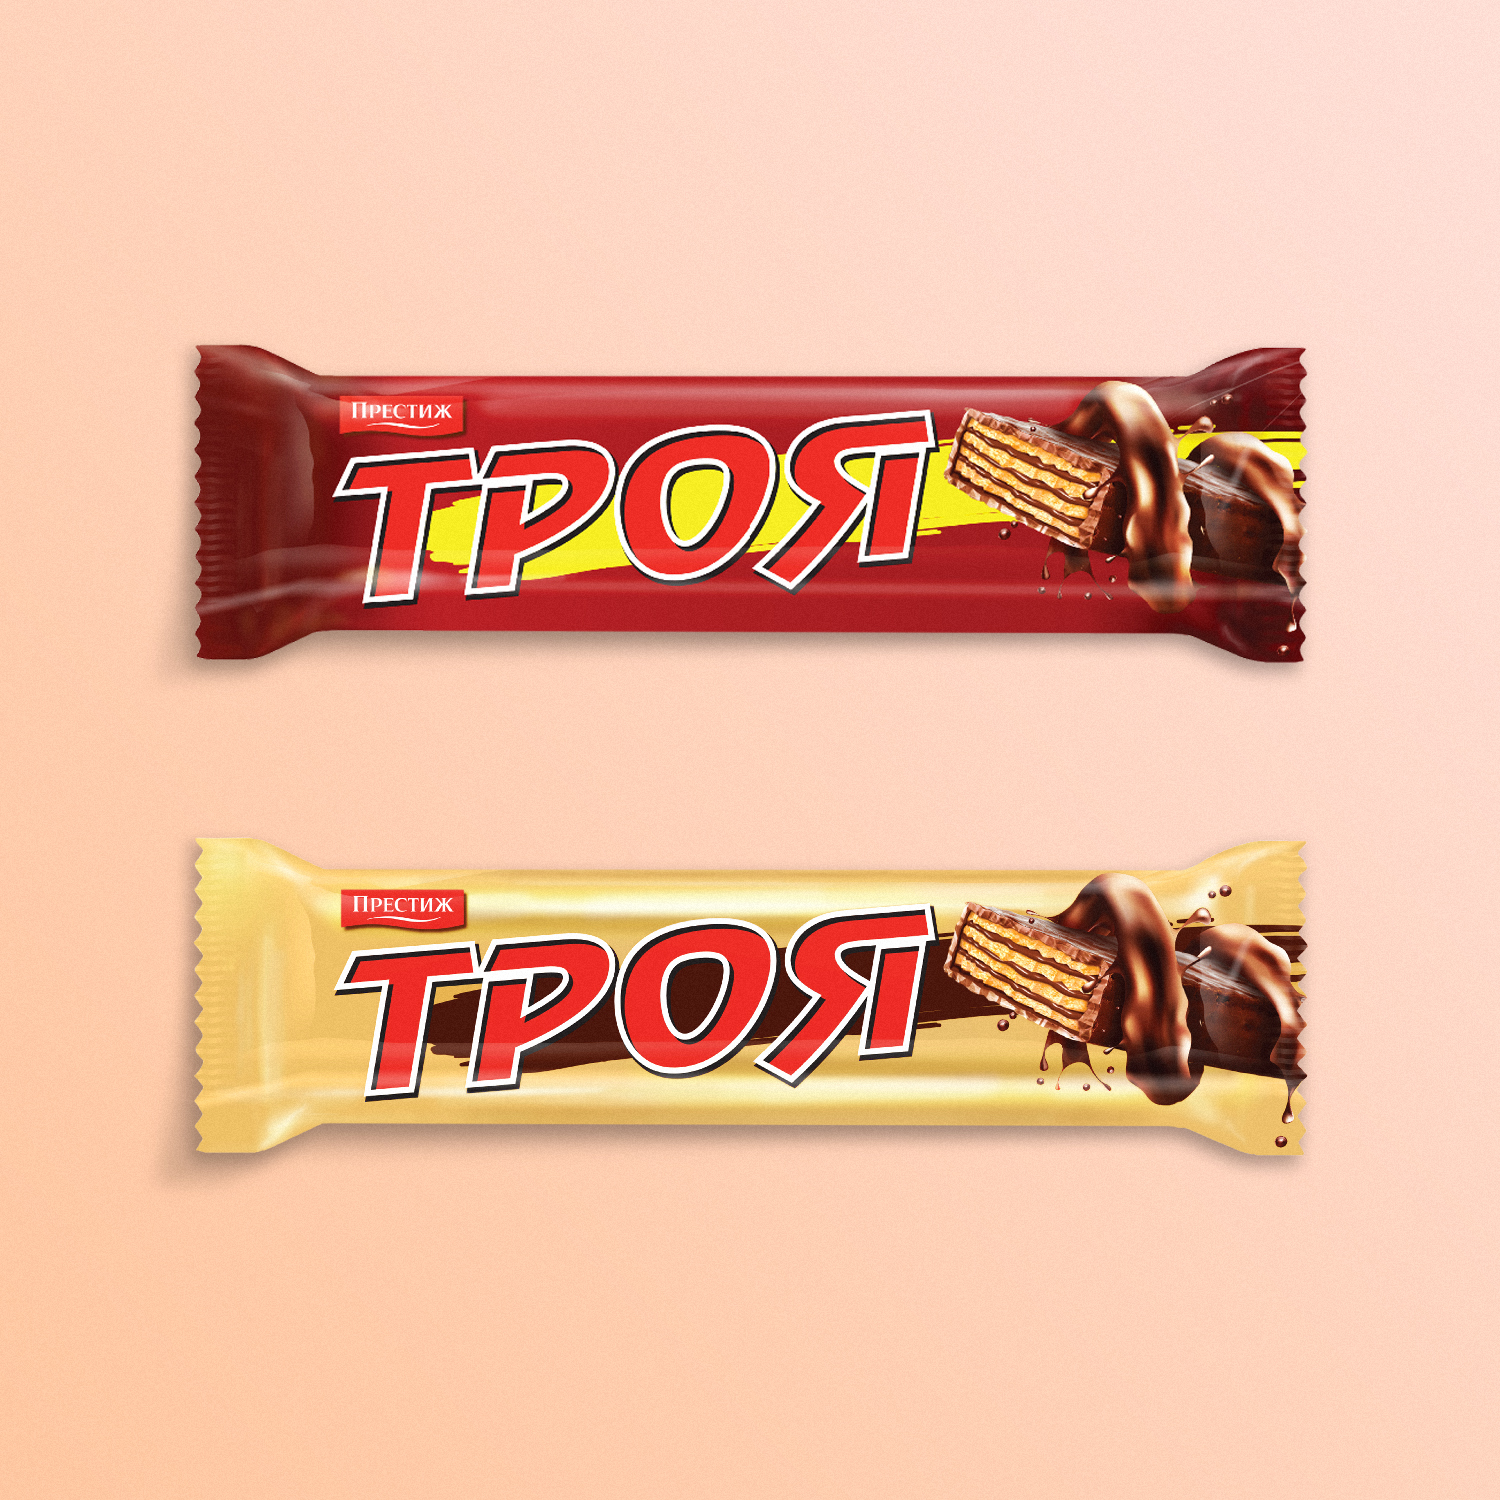 Troy packaging redesign